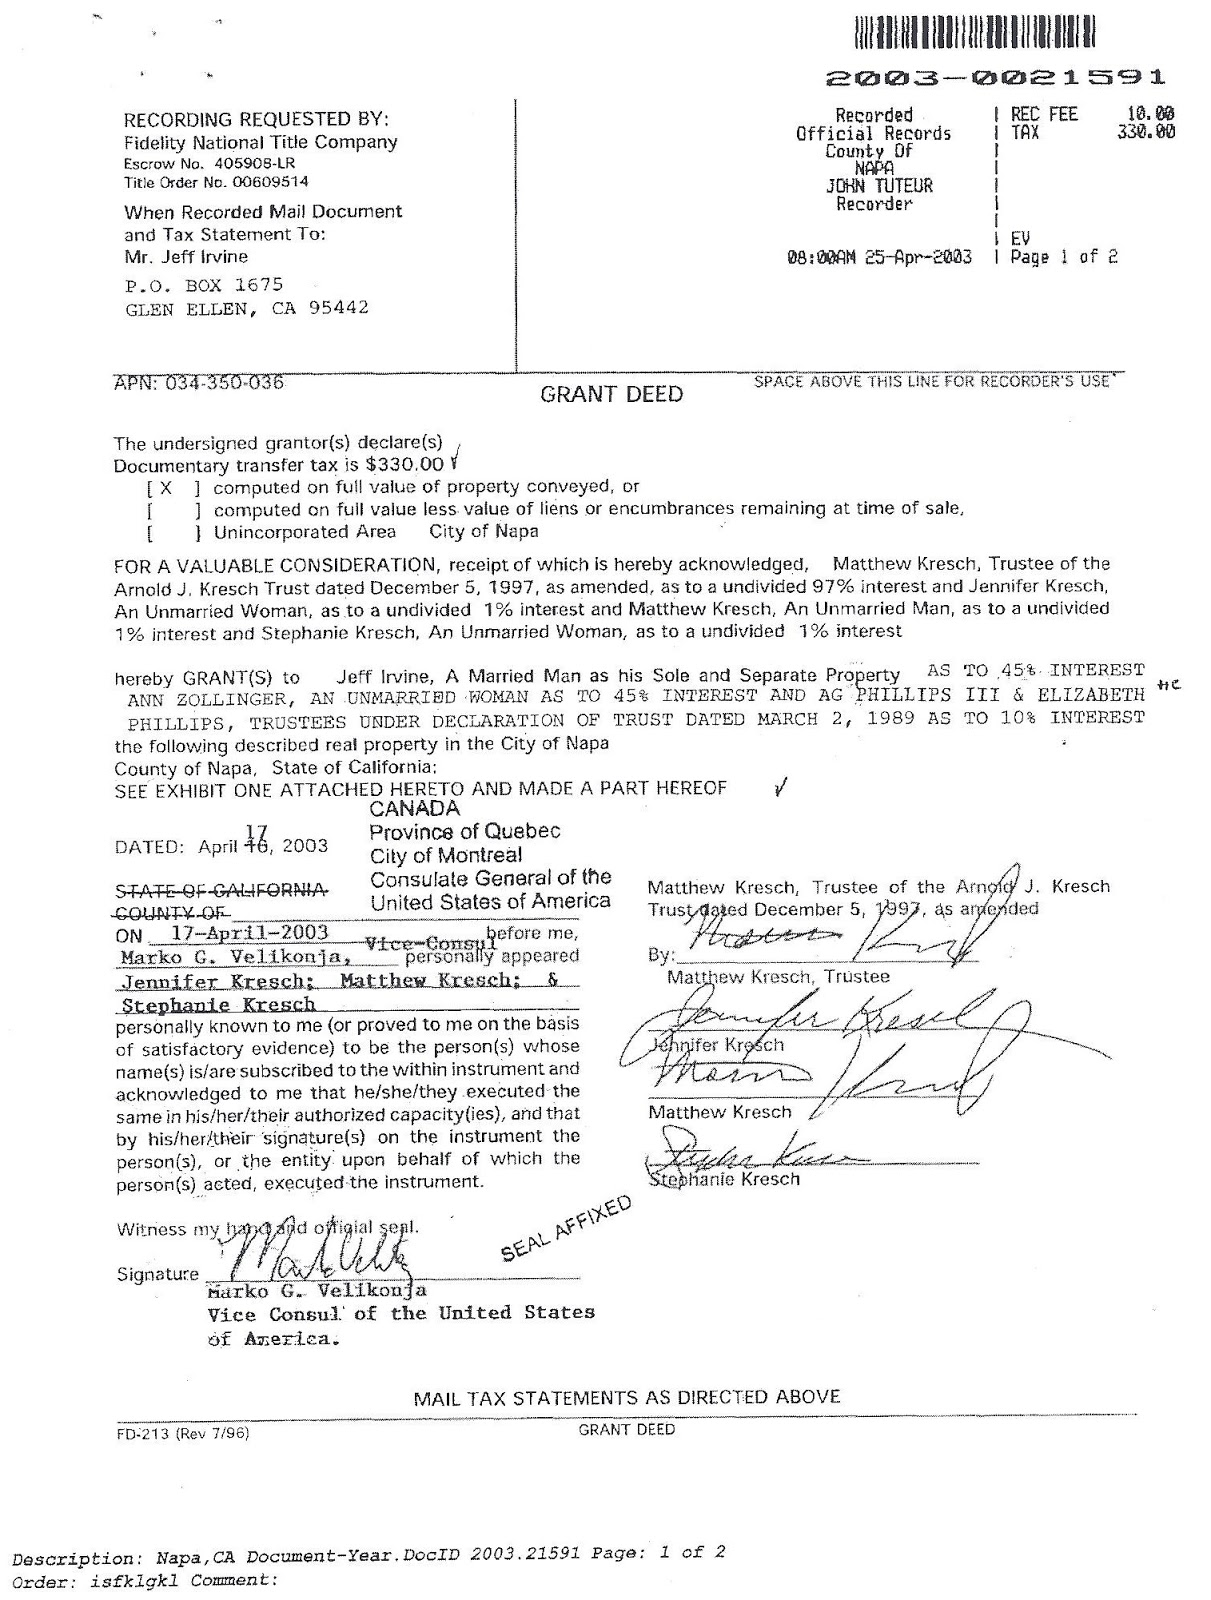 Officer Title On Deed Pictures to Pin PinsDaddy – Grant Deed Form